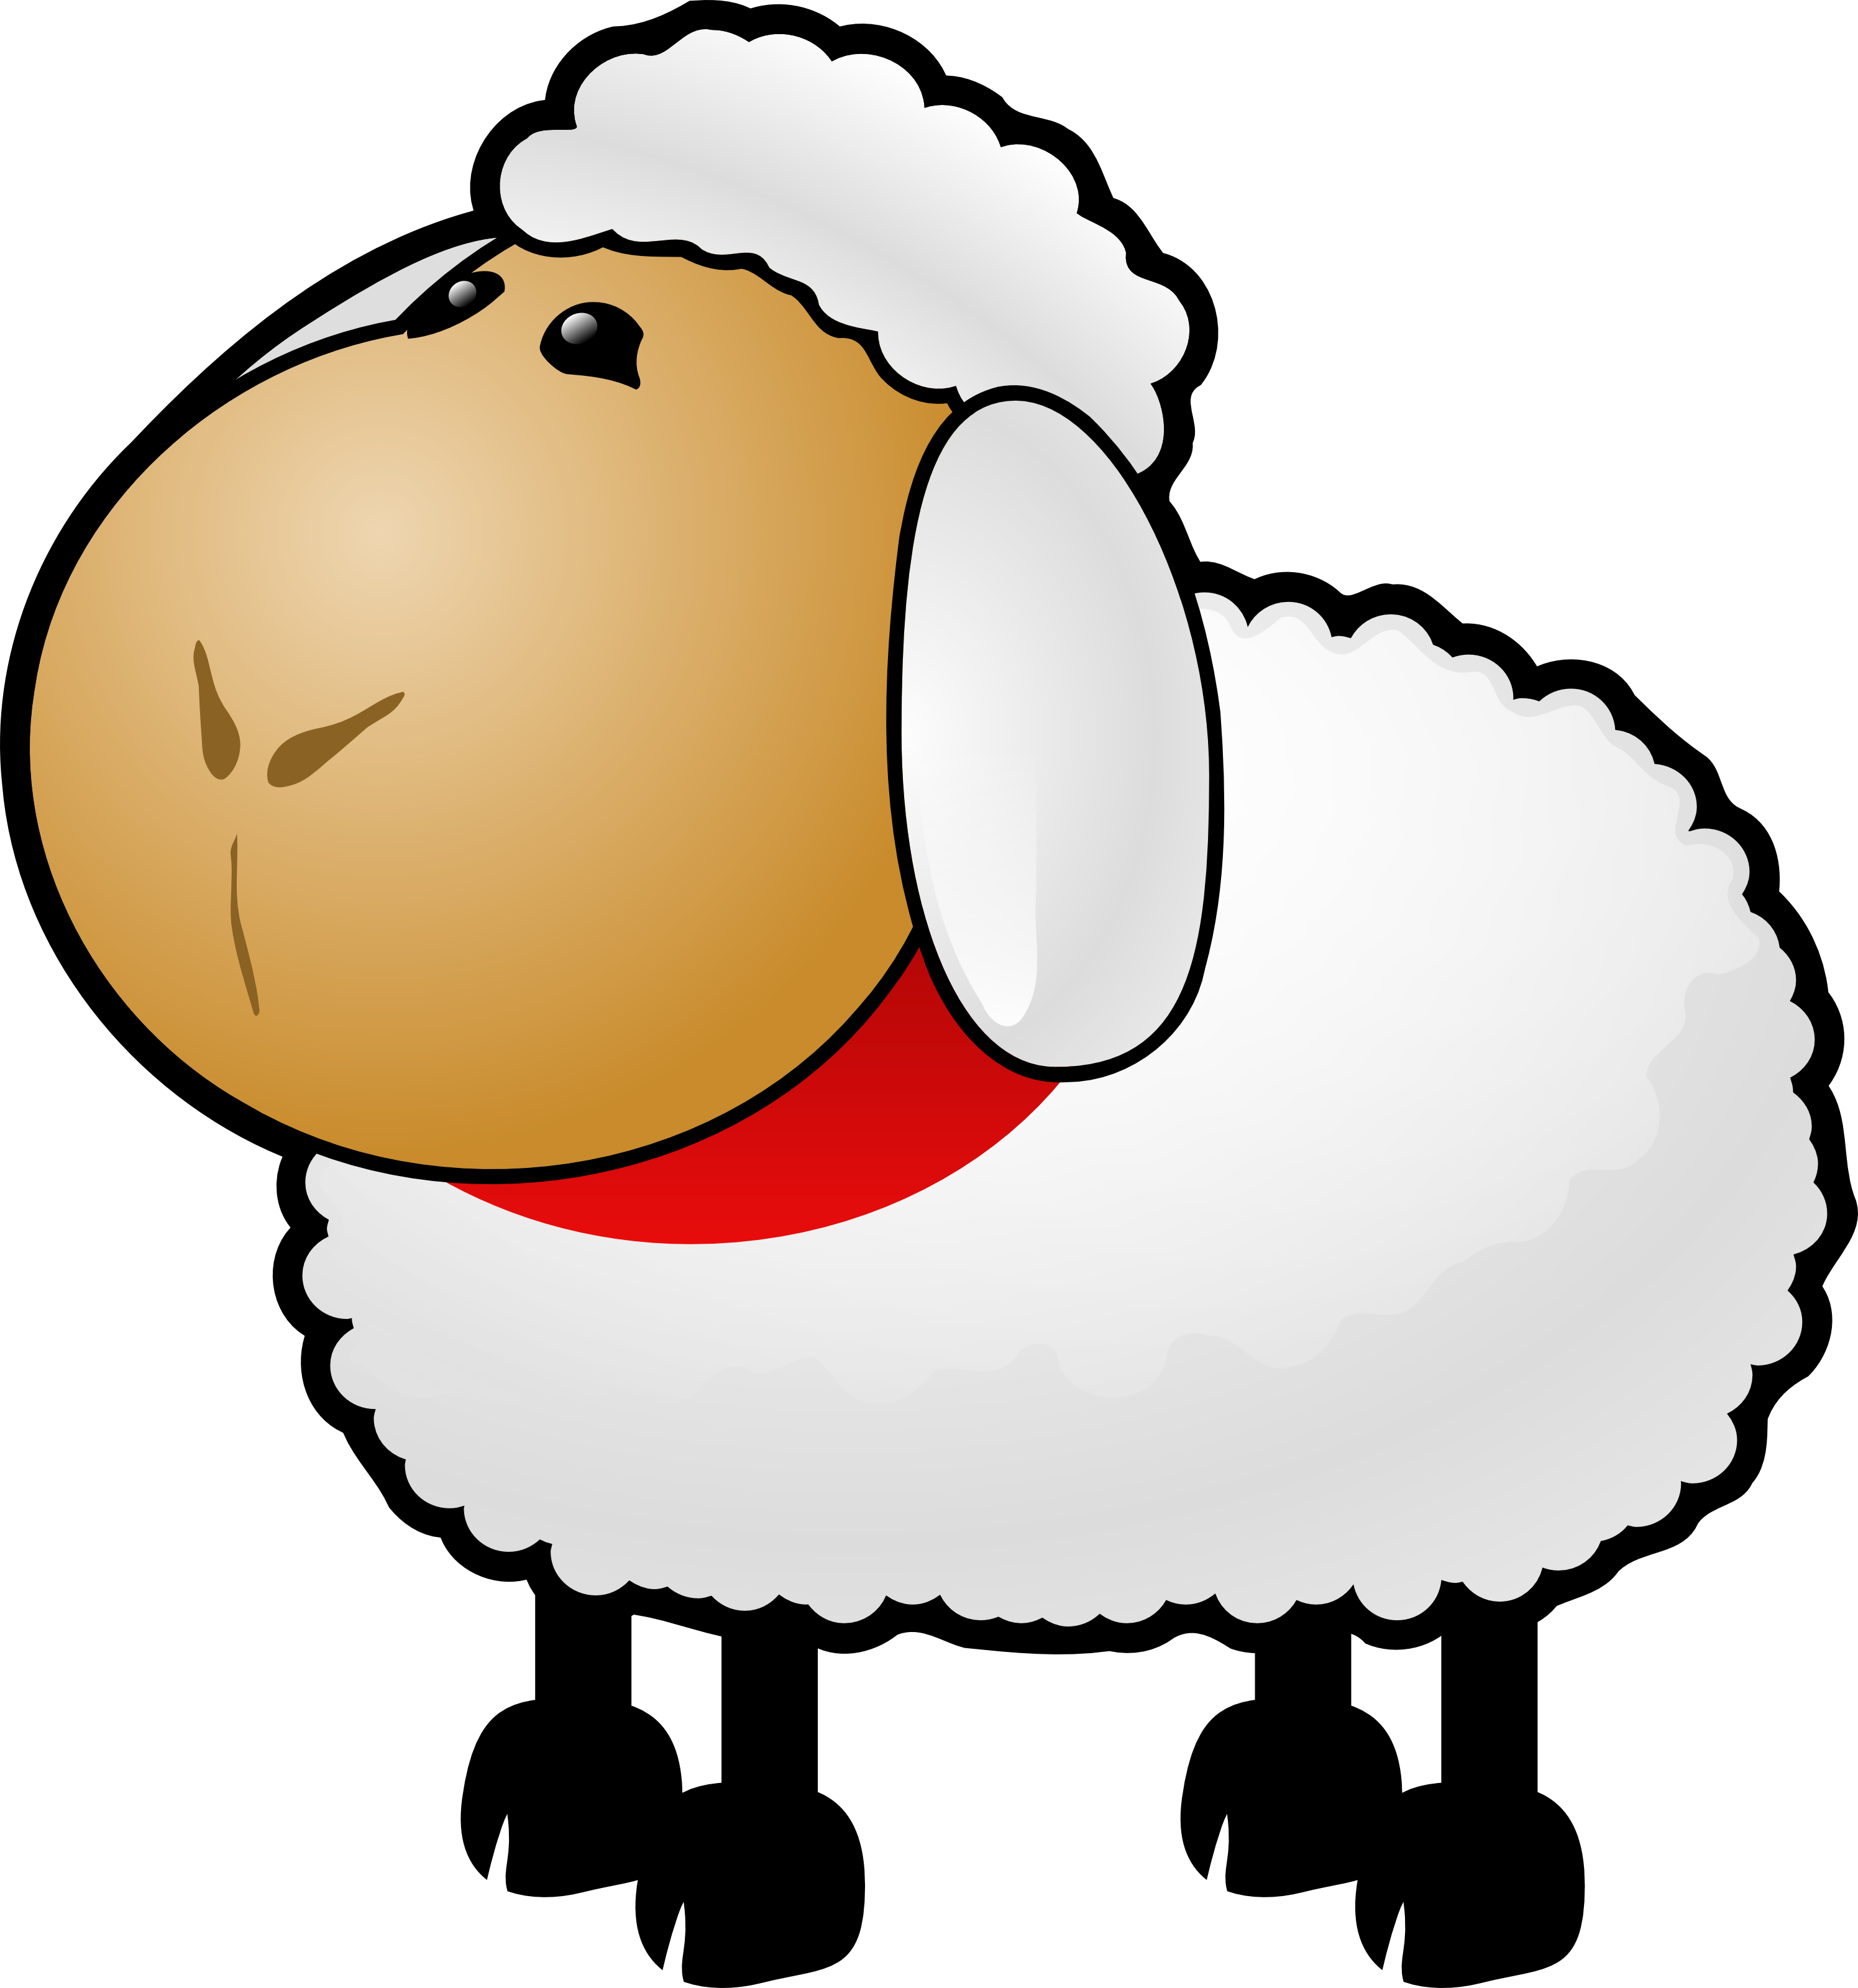 Cute Sheep Clipart Free Image Download